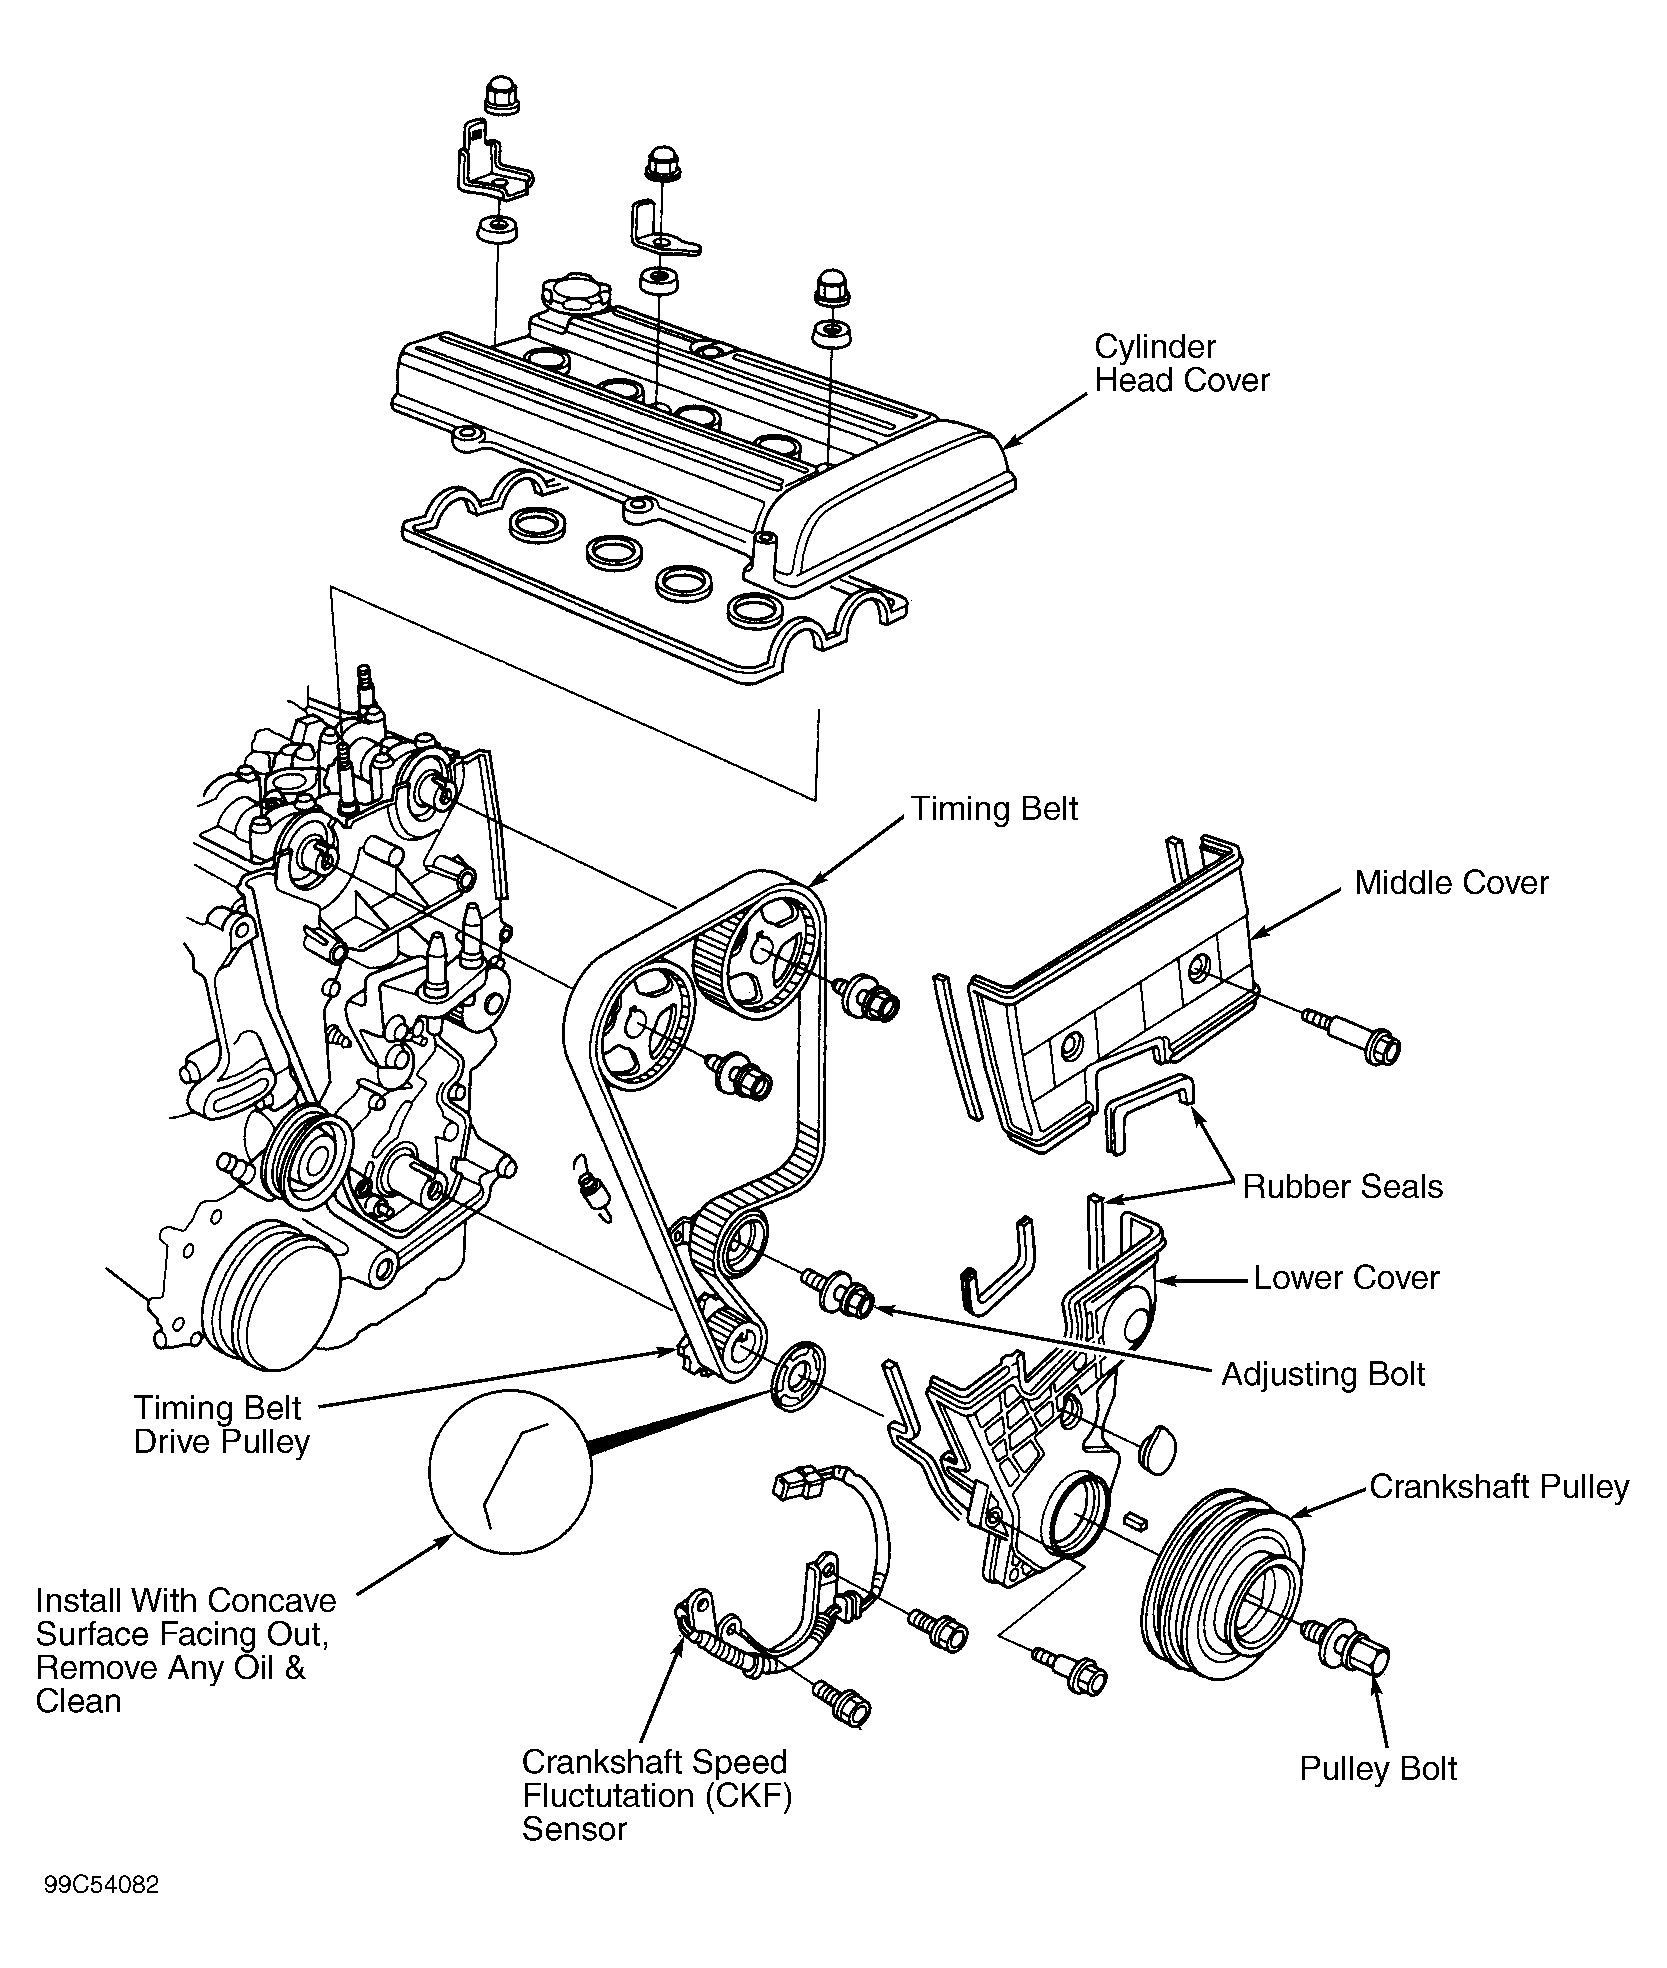 Ford Excursion Engine Diagram